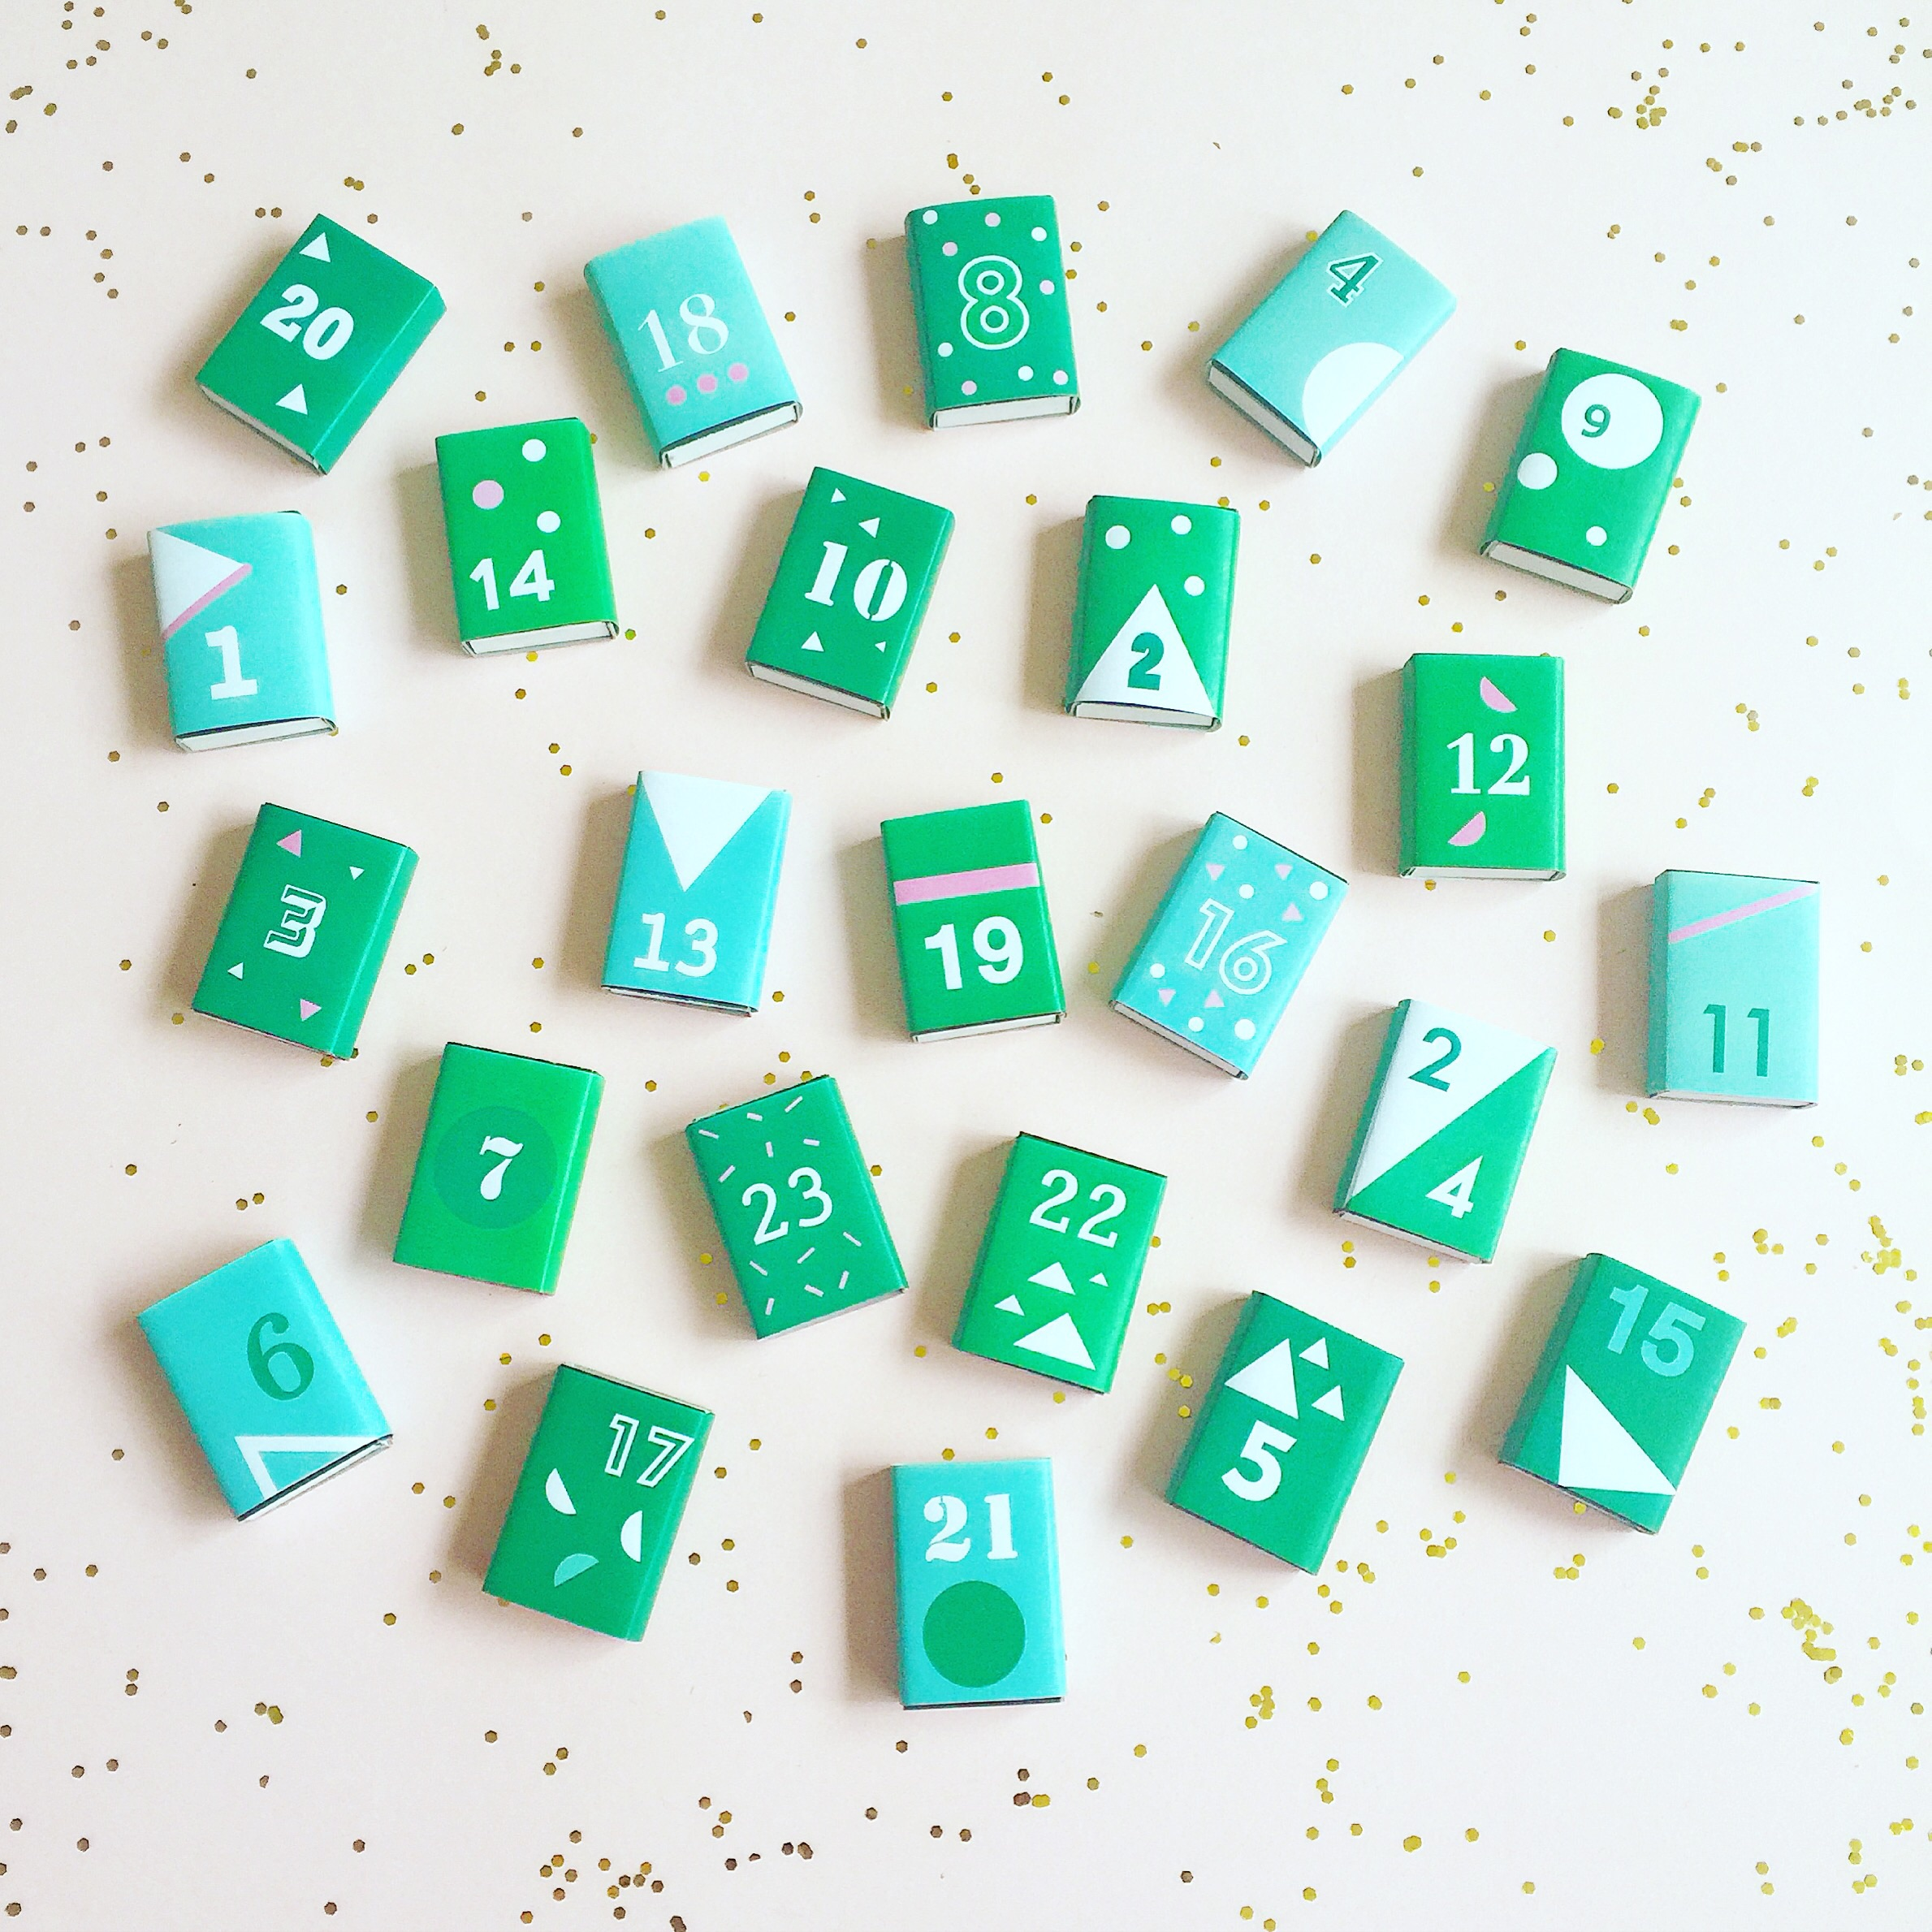 Number Match Boxes Typography Advent Calendar.jpg